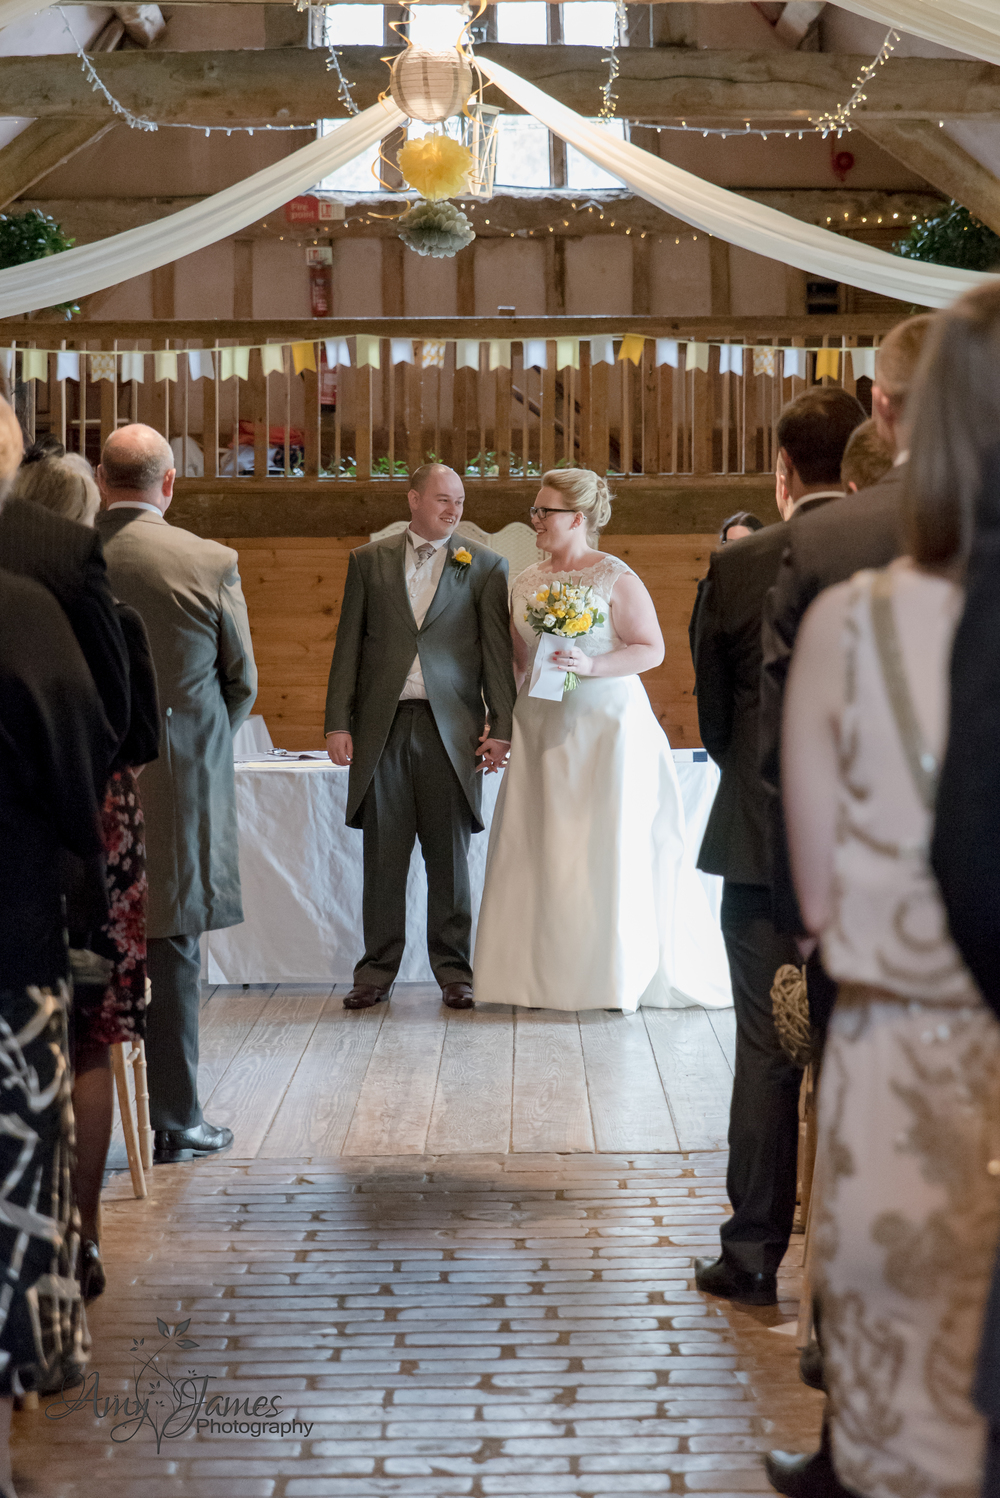 Fleet Wedding Photographer Hampshire-55.jpg